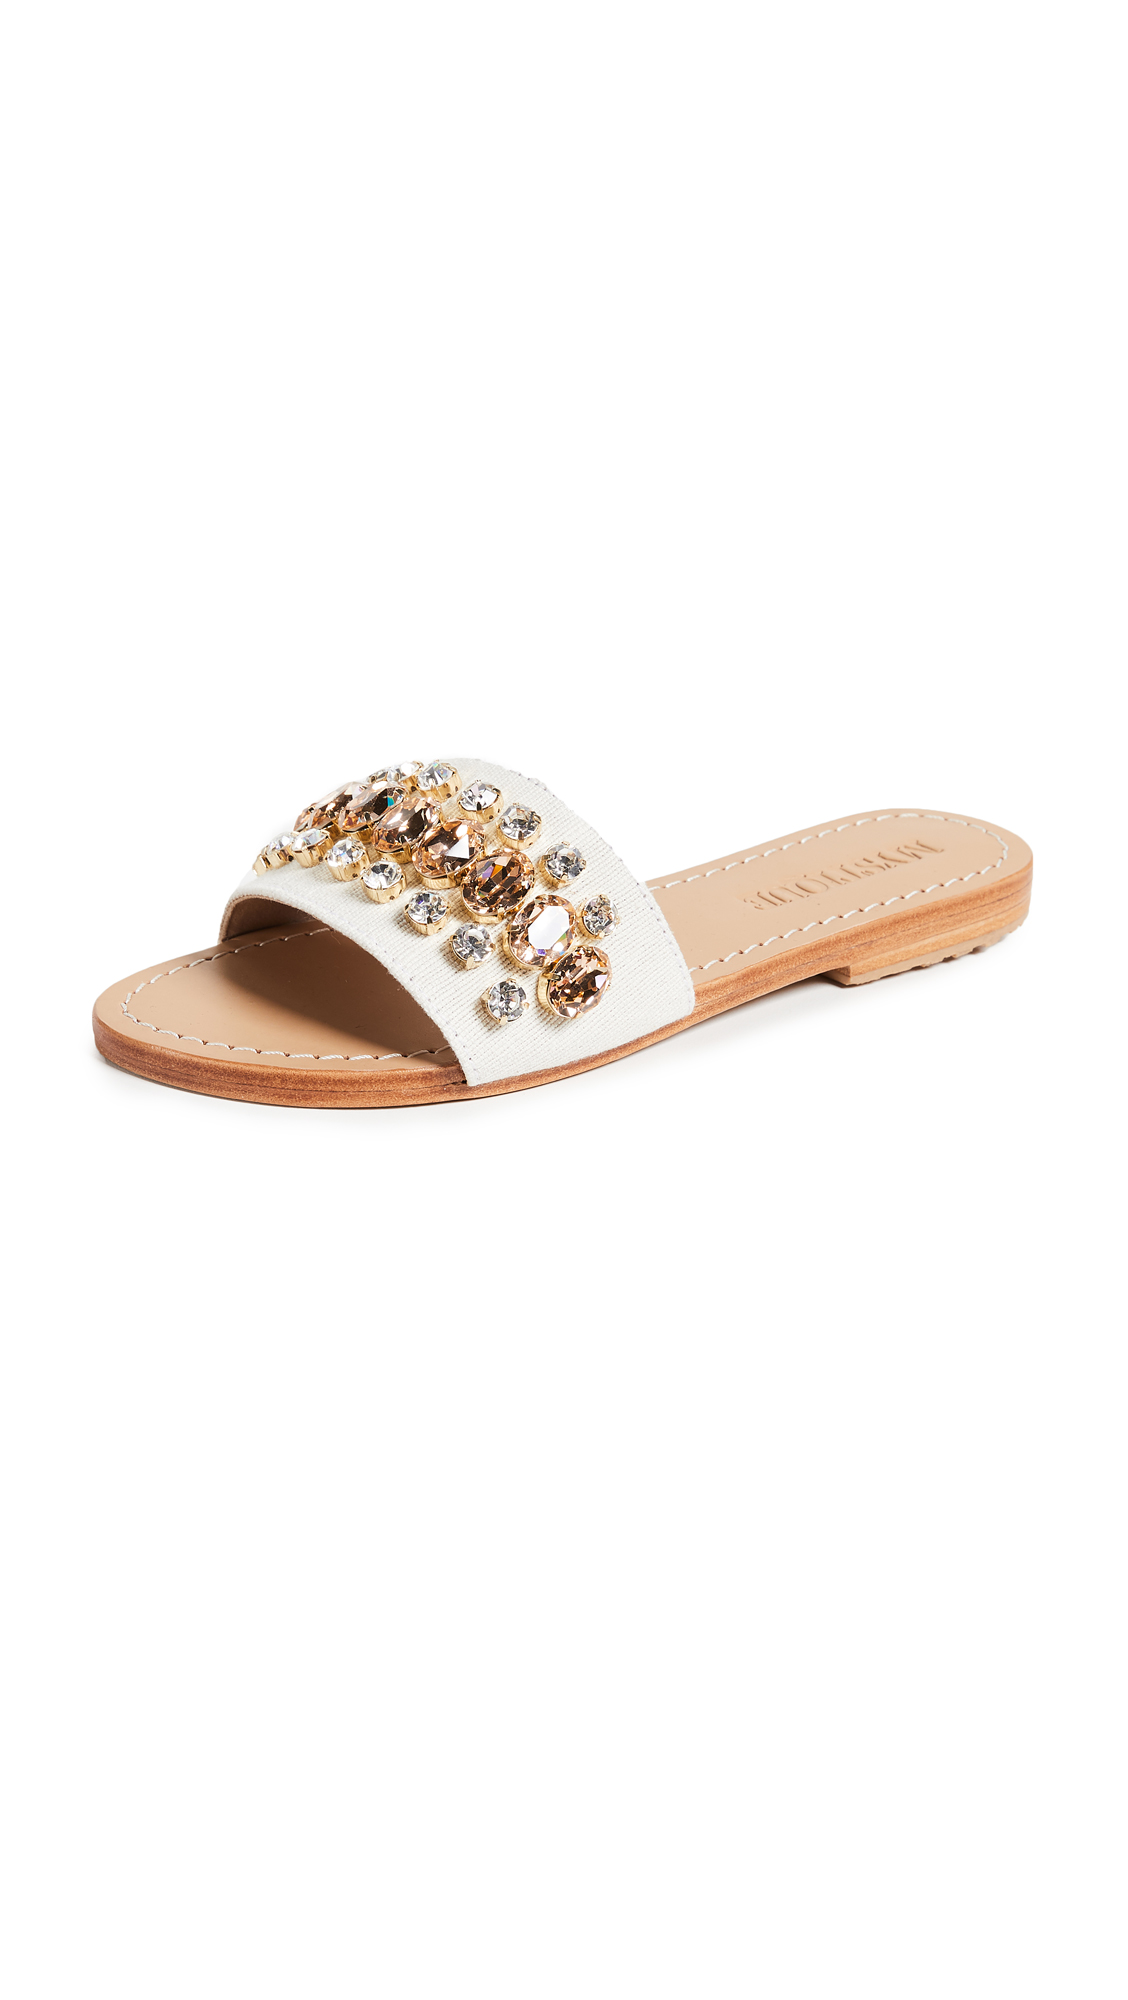 Mystique Jewel Slides - Twill